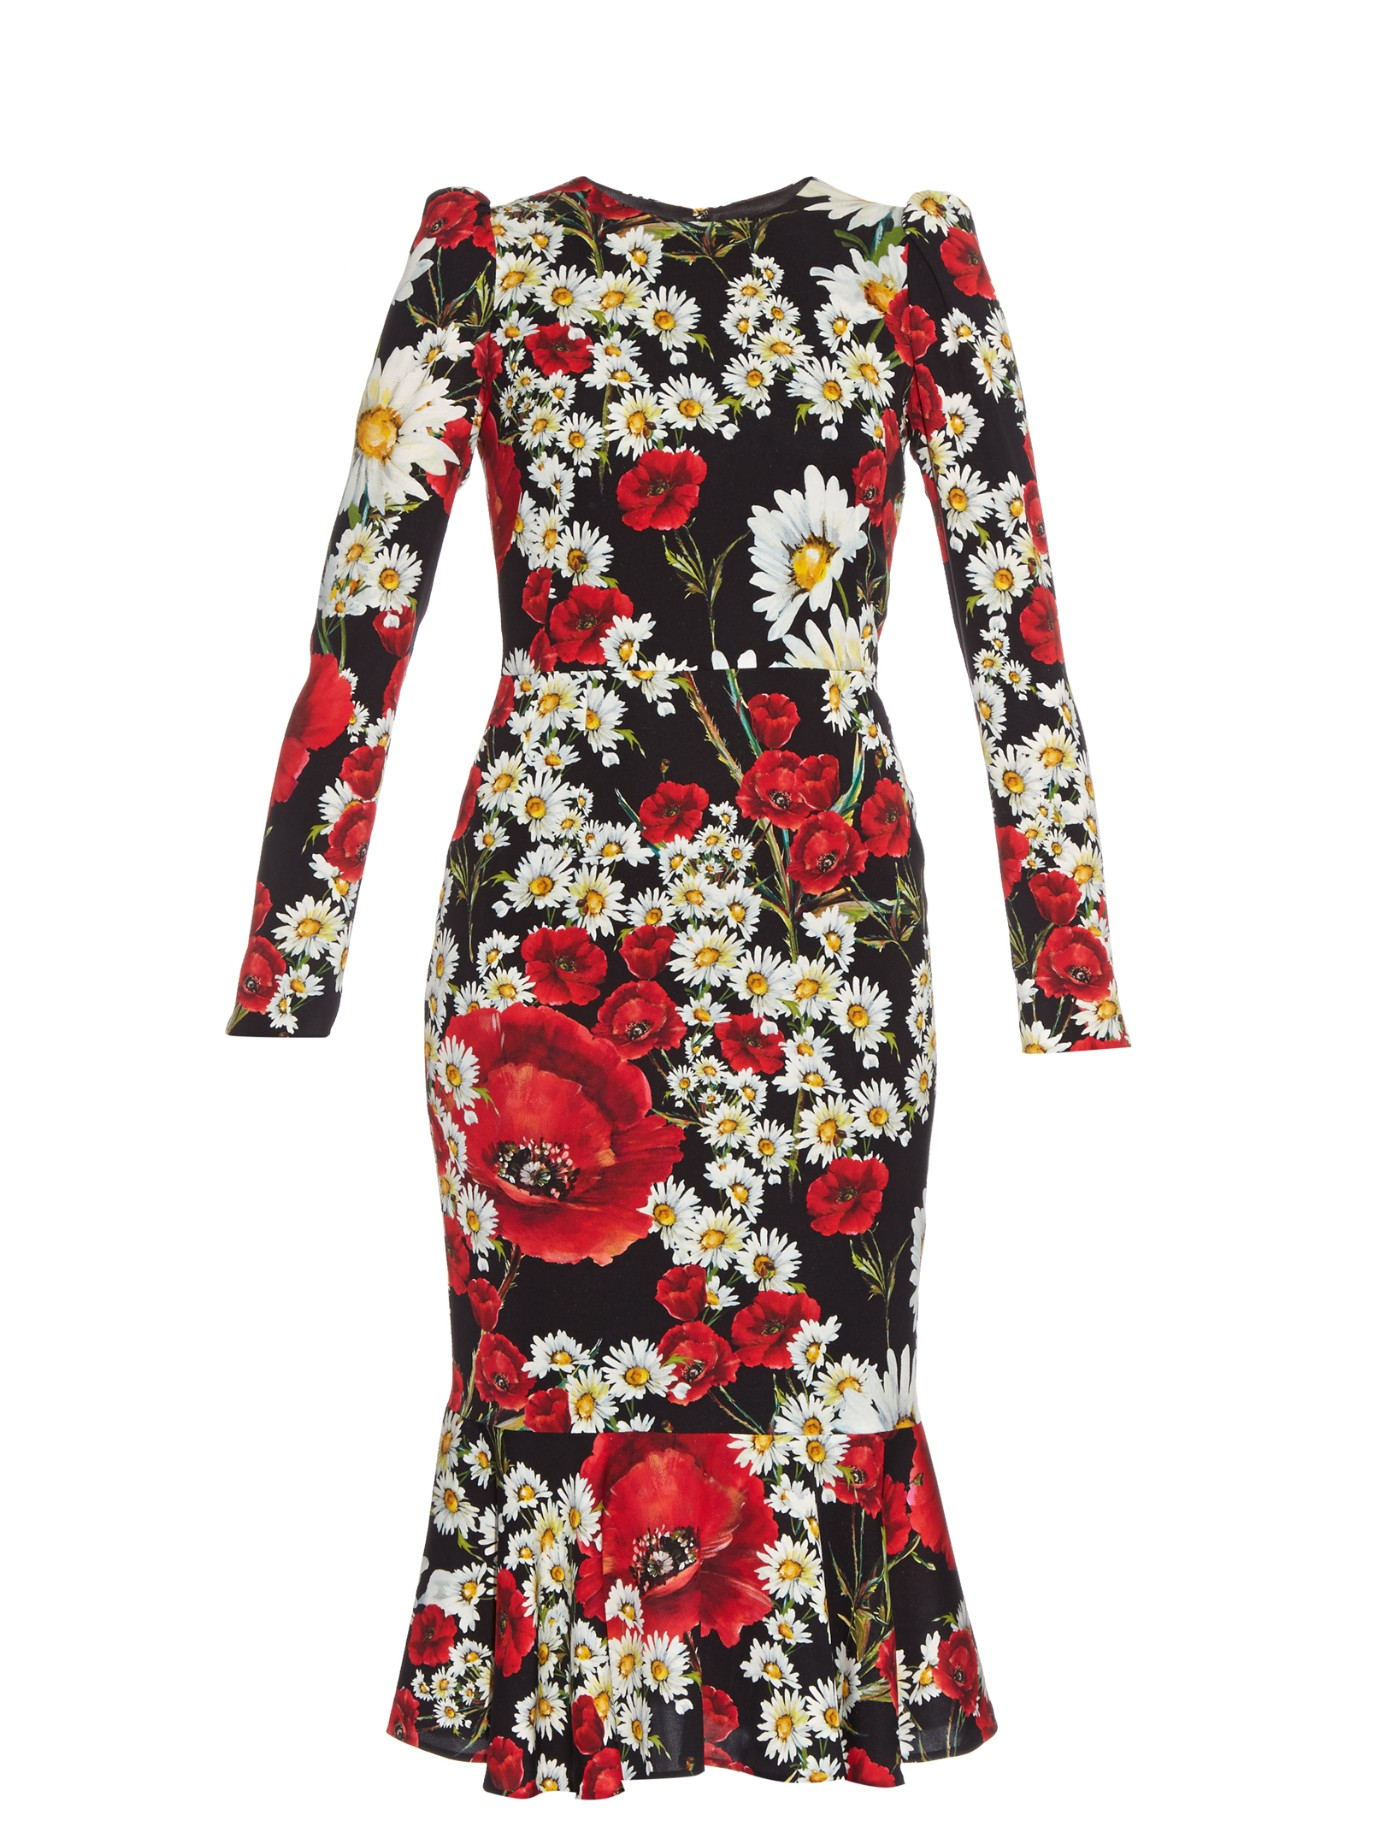 e14999c7 Dolce & Gabbana Poppy And Daisy-print Dress in Red - Lyst